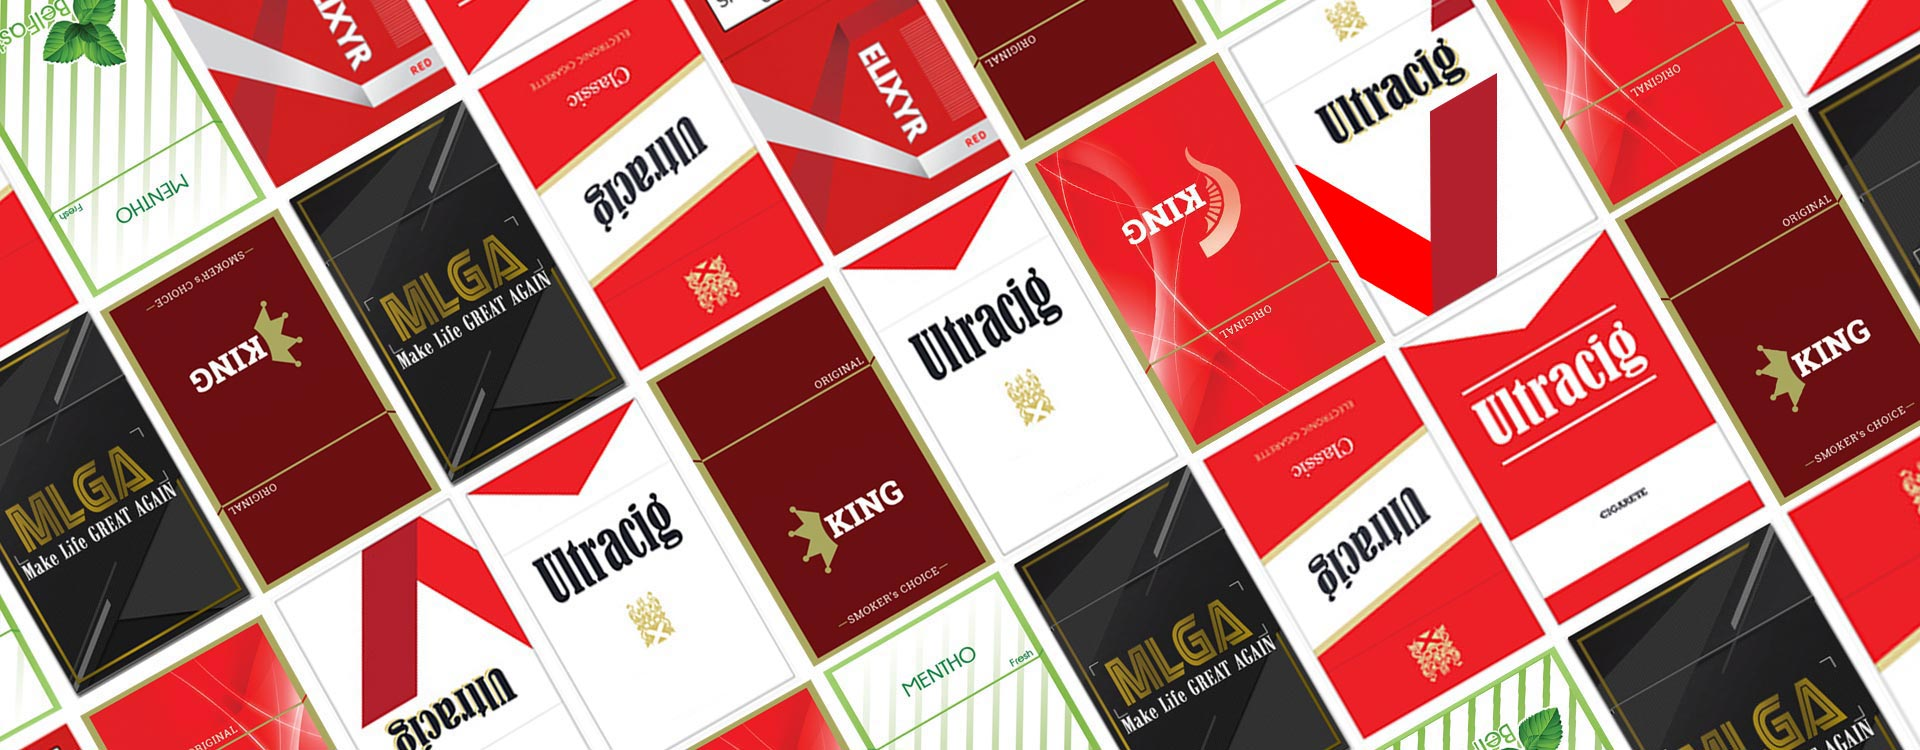 Private Label Cigarette Manufacturer